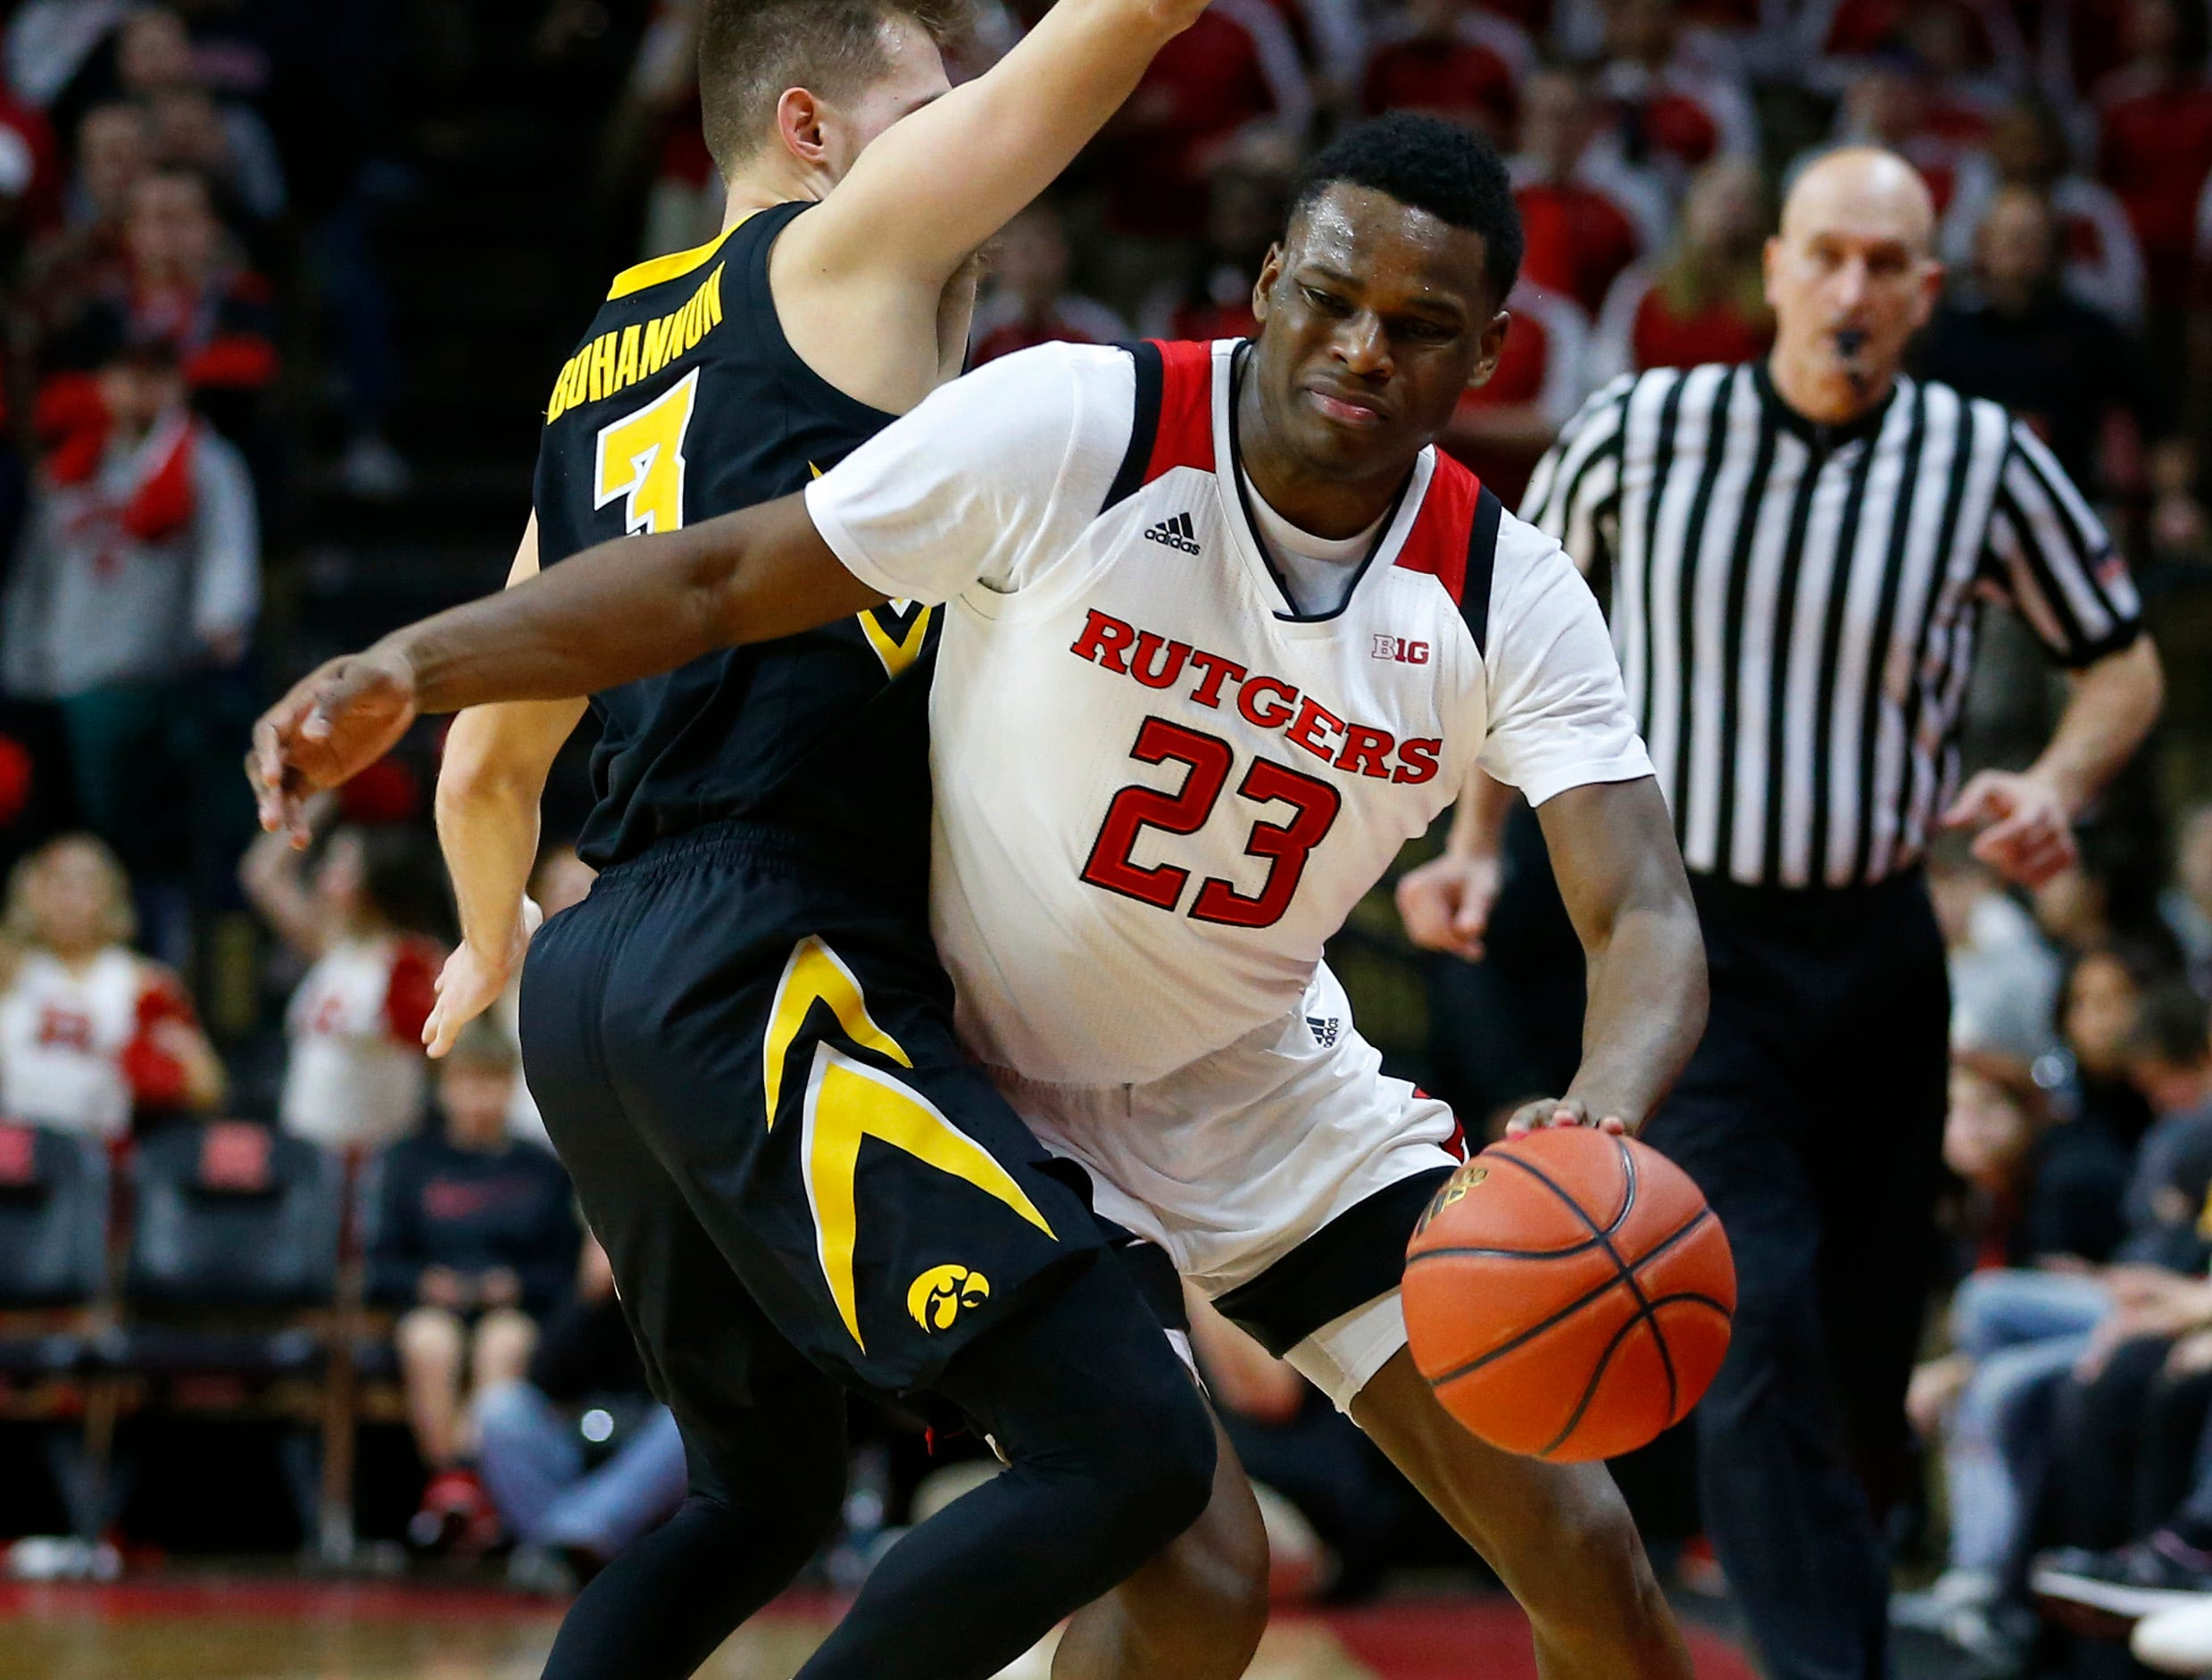 Iowa Hawkeyes guard Jordan Bohannon (3) defends against Rutgers Scarlet Knights guard Montez Mathis (23) during the second half at Rutgers Athletic Center (RAC). Mandatory Credit: Noah K. Murray-USA TODAY Sports